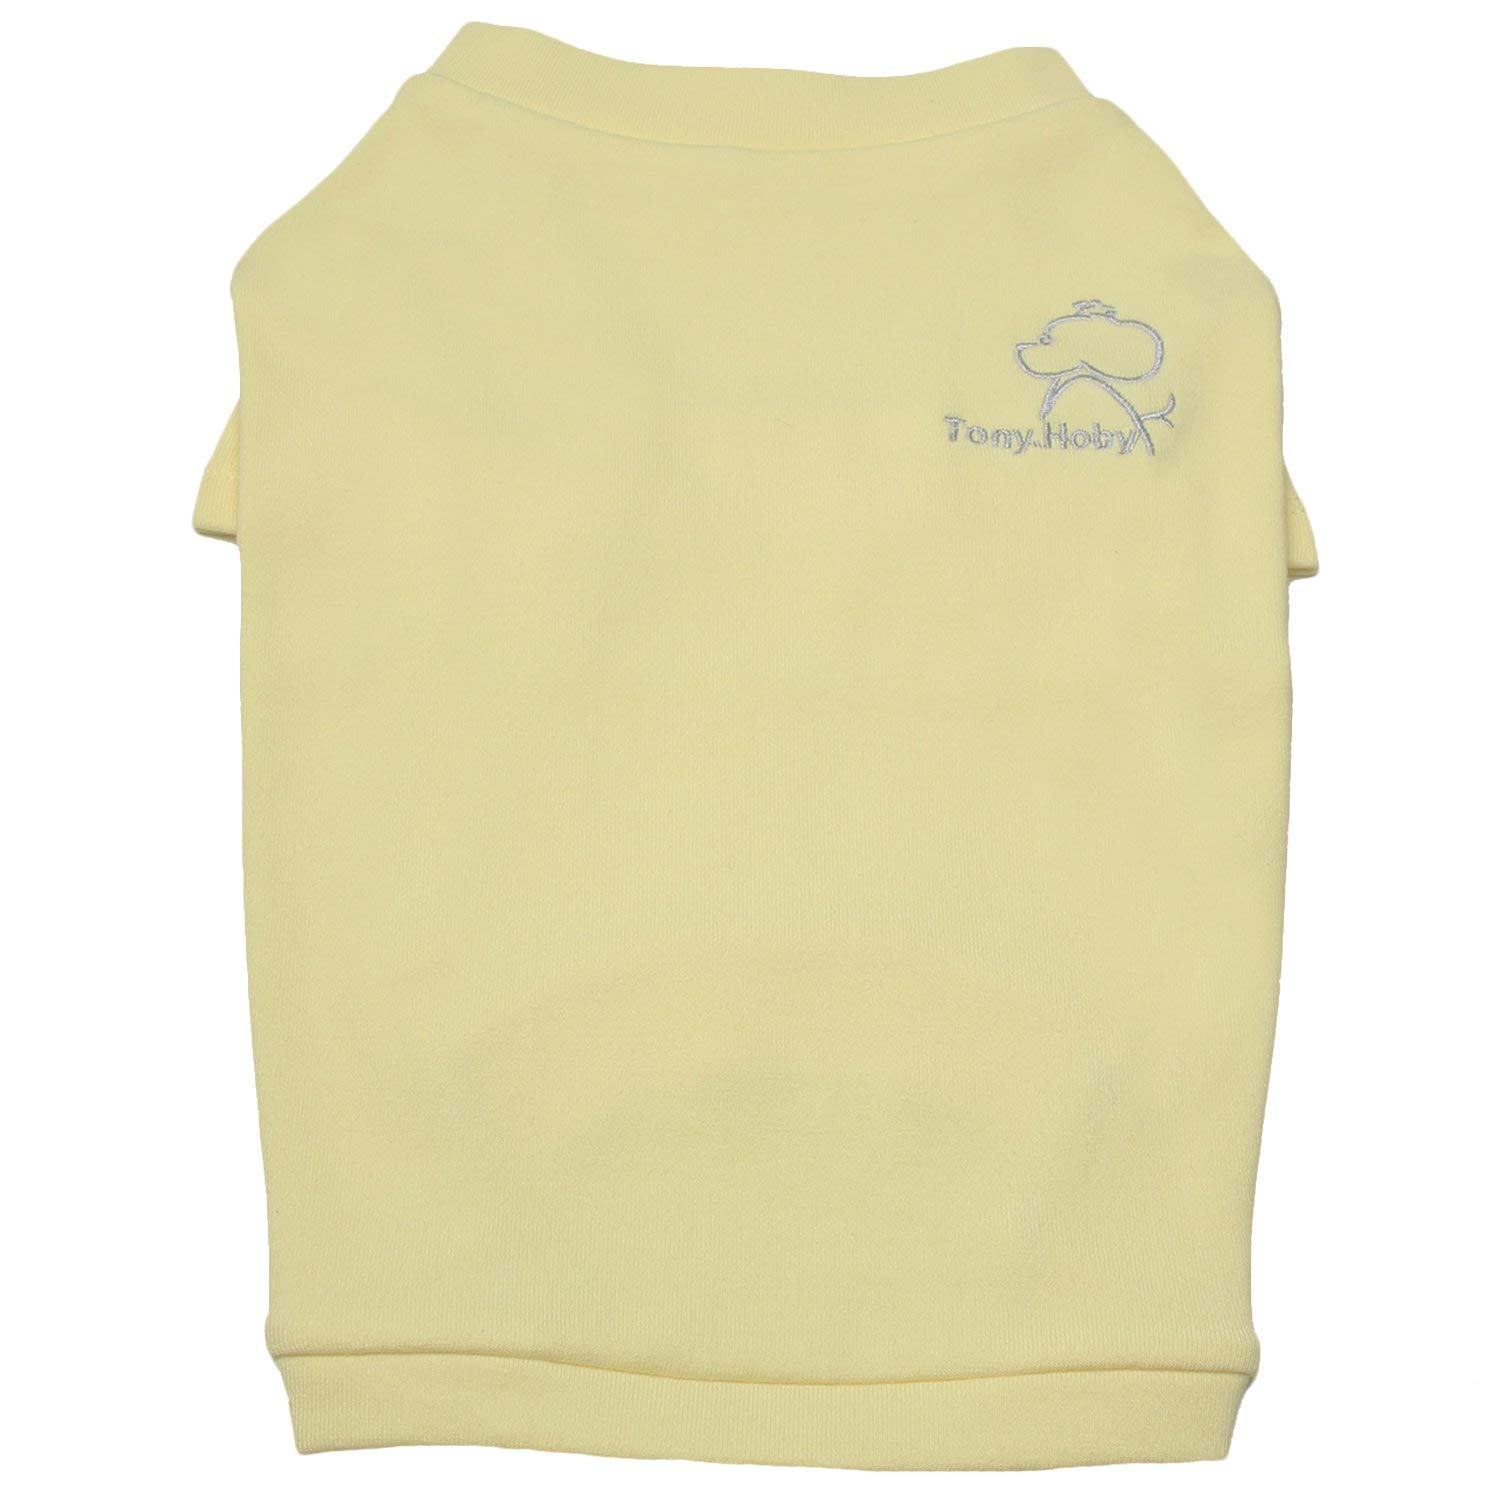 TONY HOBY Plain Dog Shirts Dog Tee Shirts Pet Summer Clothes Soft Cotton for Small Pet Dogs